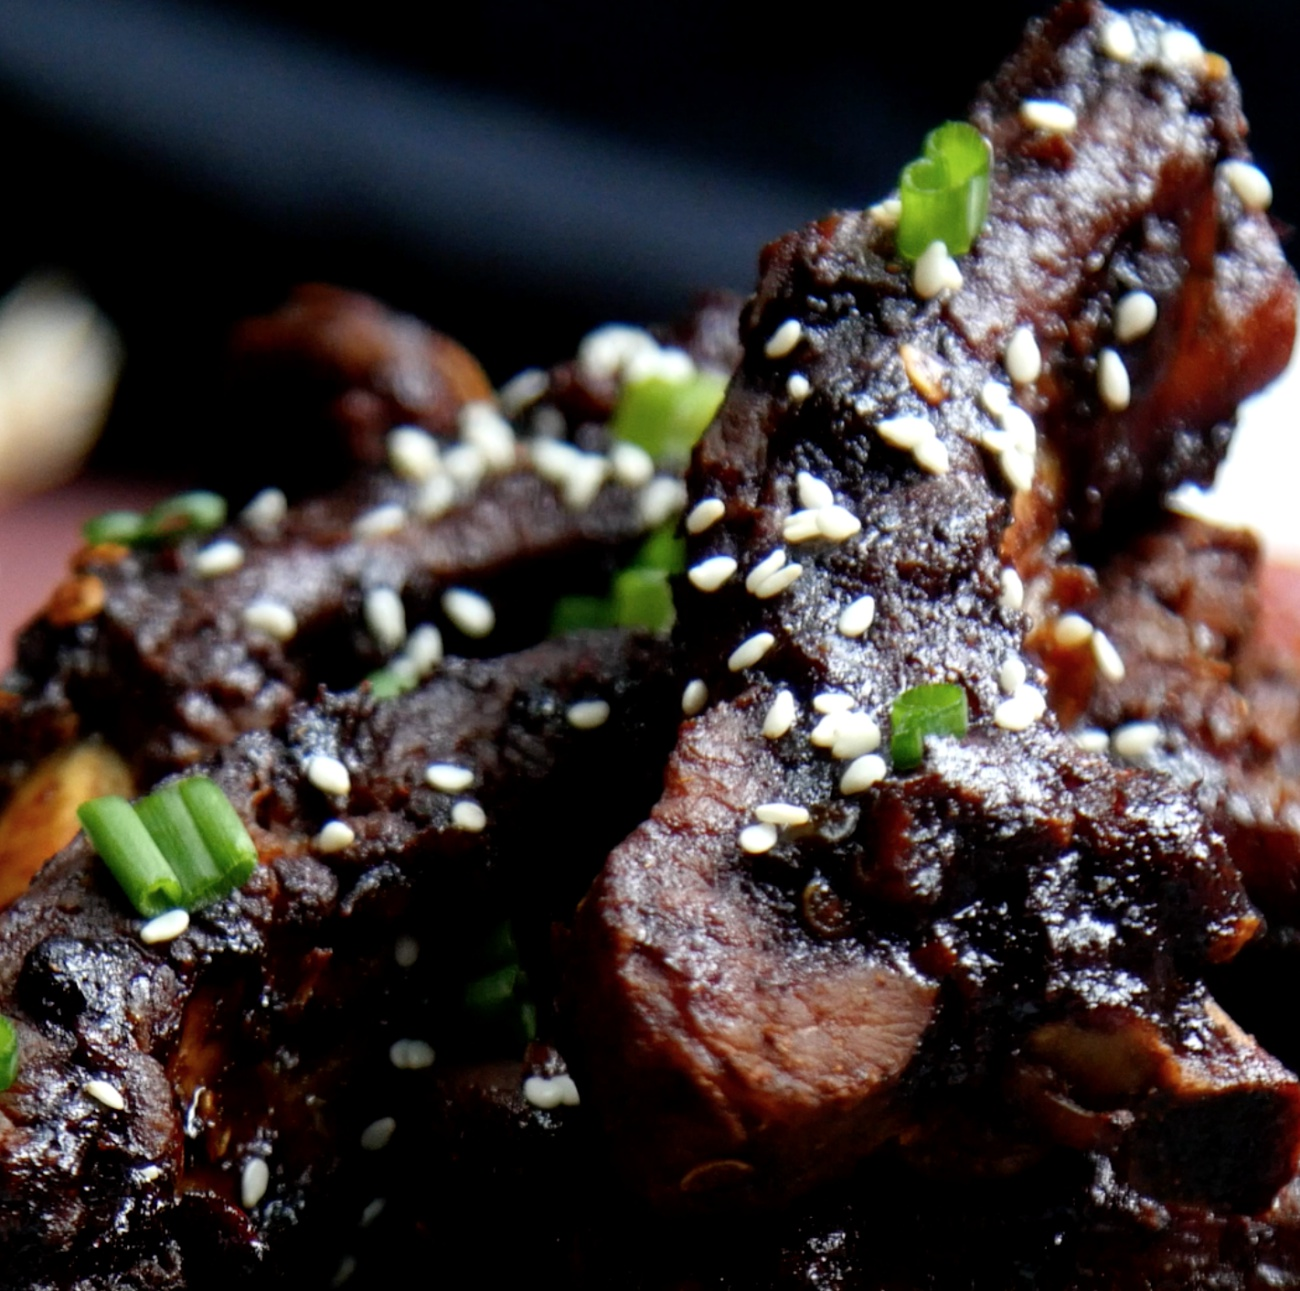 Boiled and Baked Ribs 1